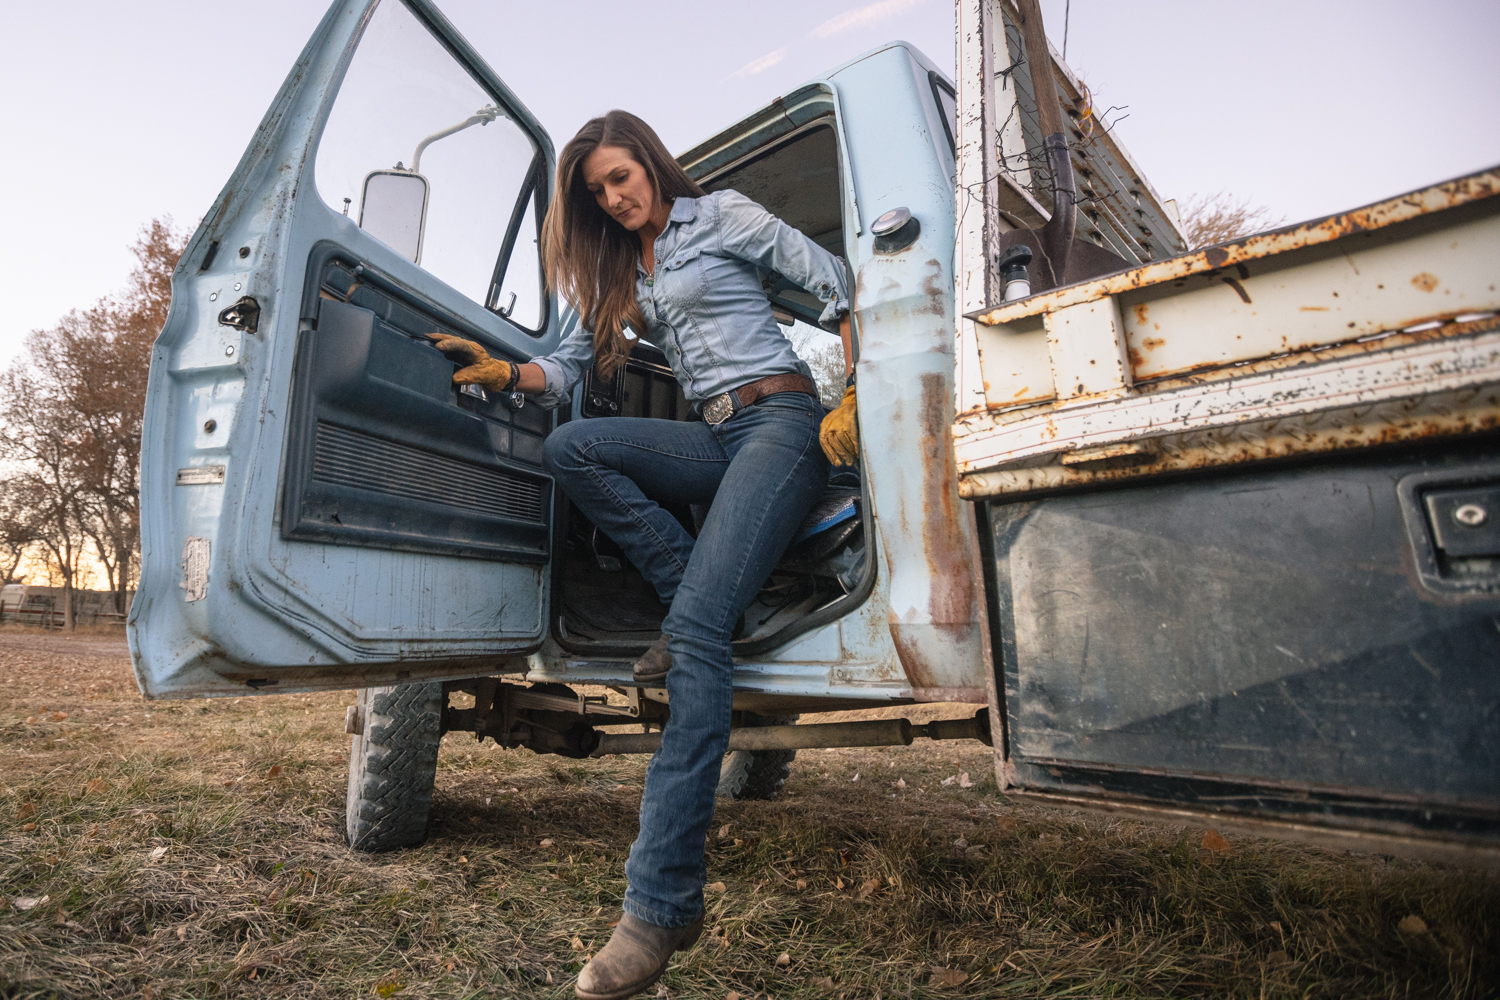 Craig Okraska photographs a woman climbing out of her pick up truck for the LOR Foundation